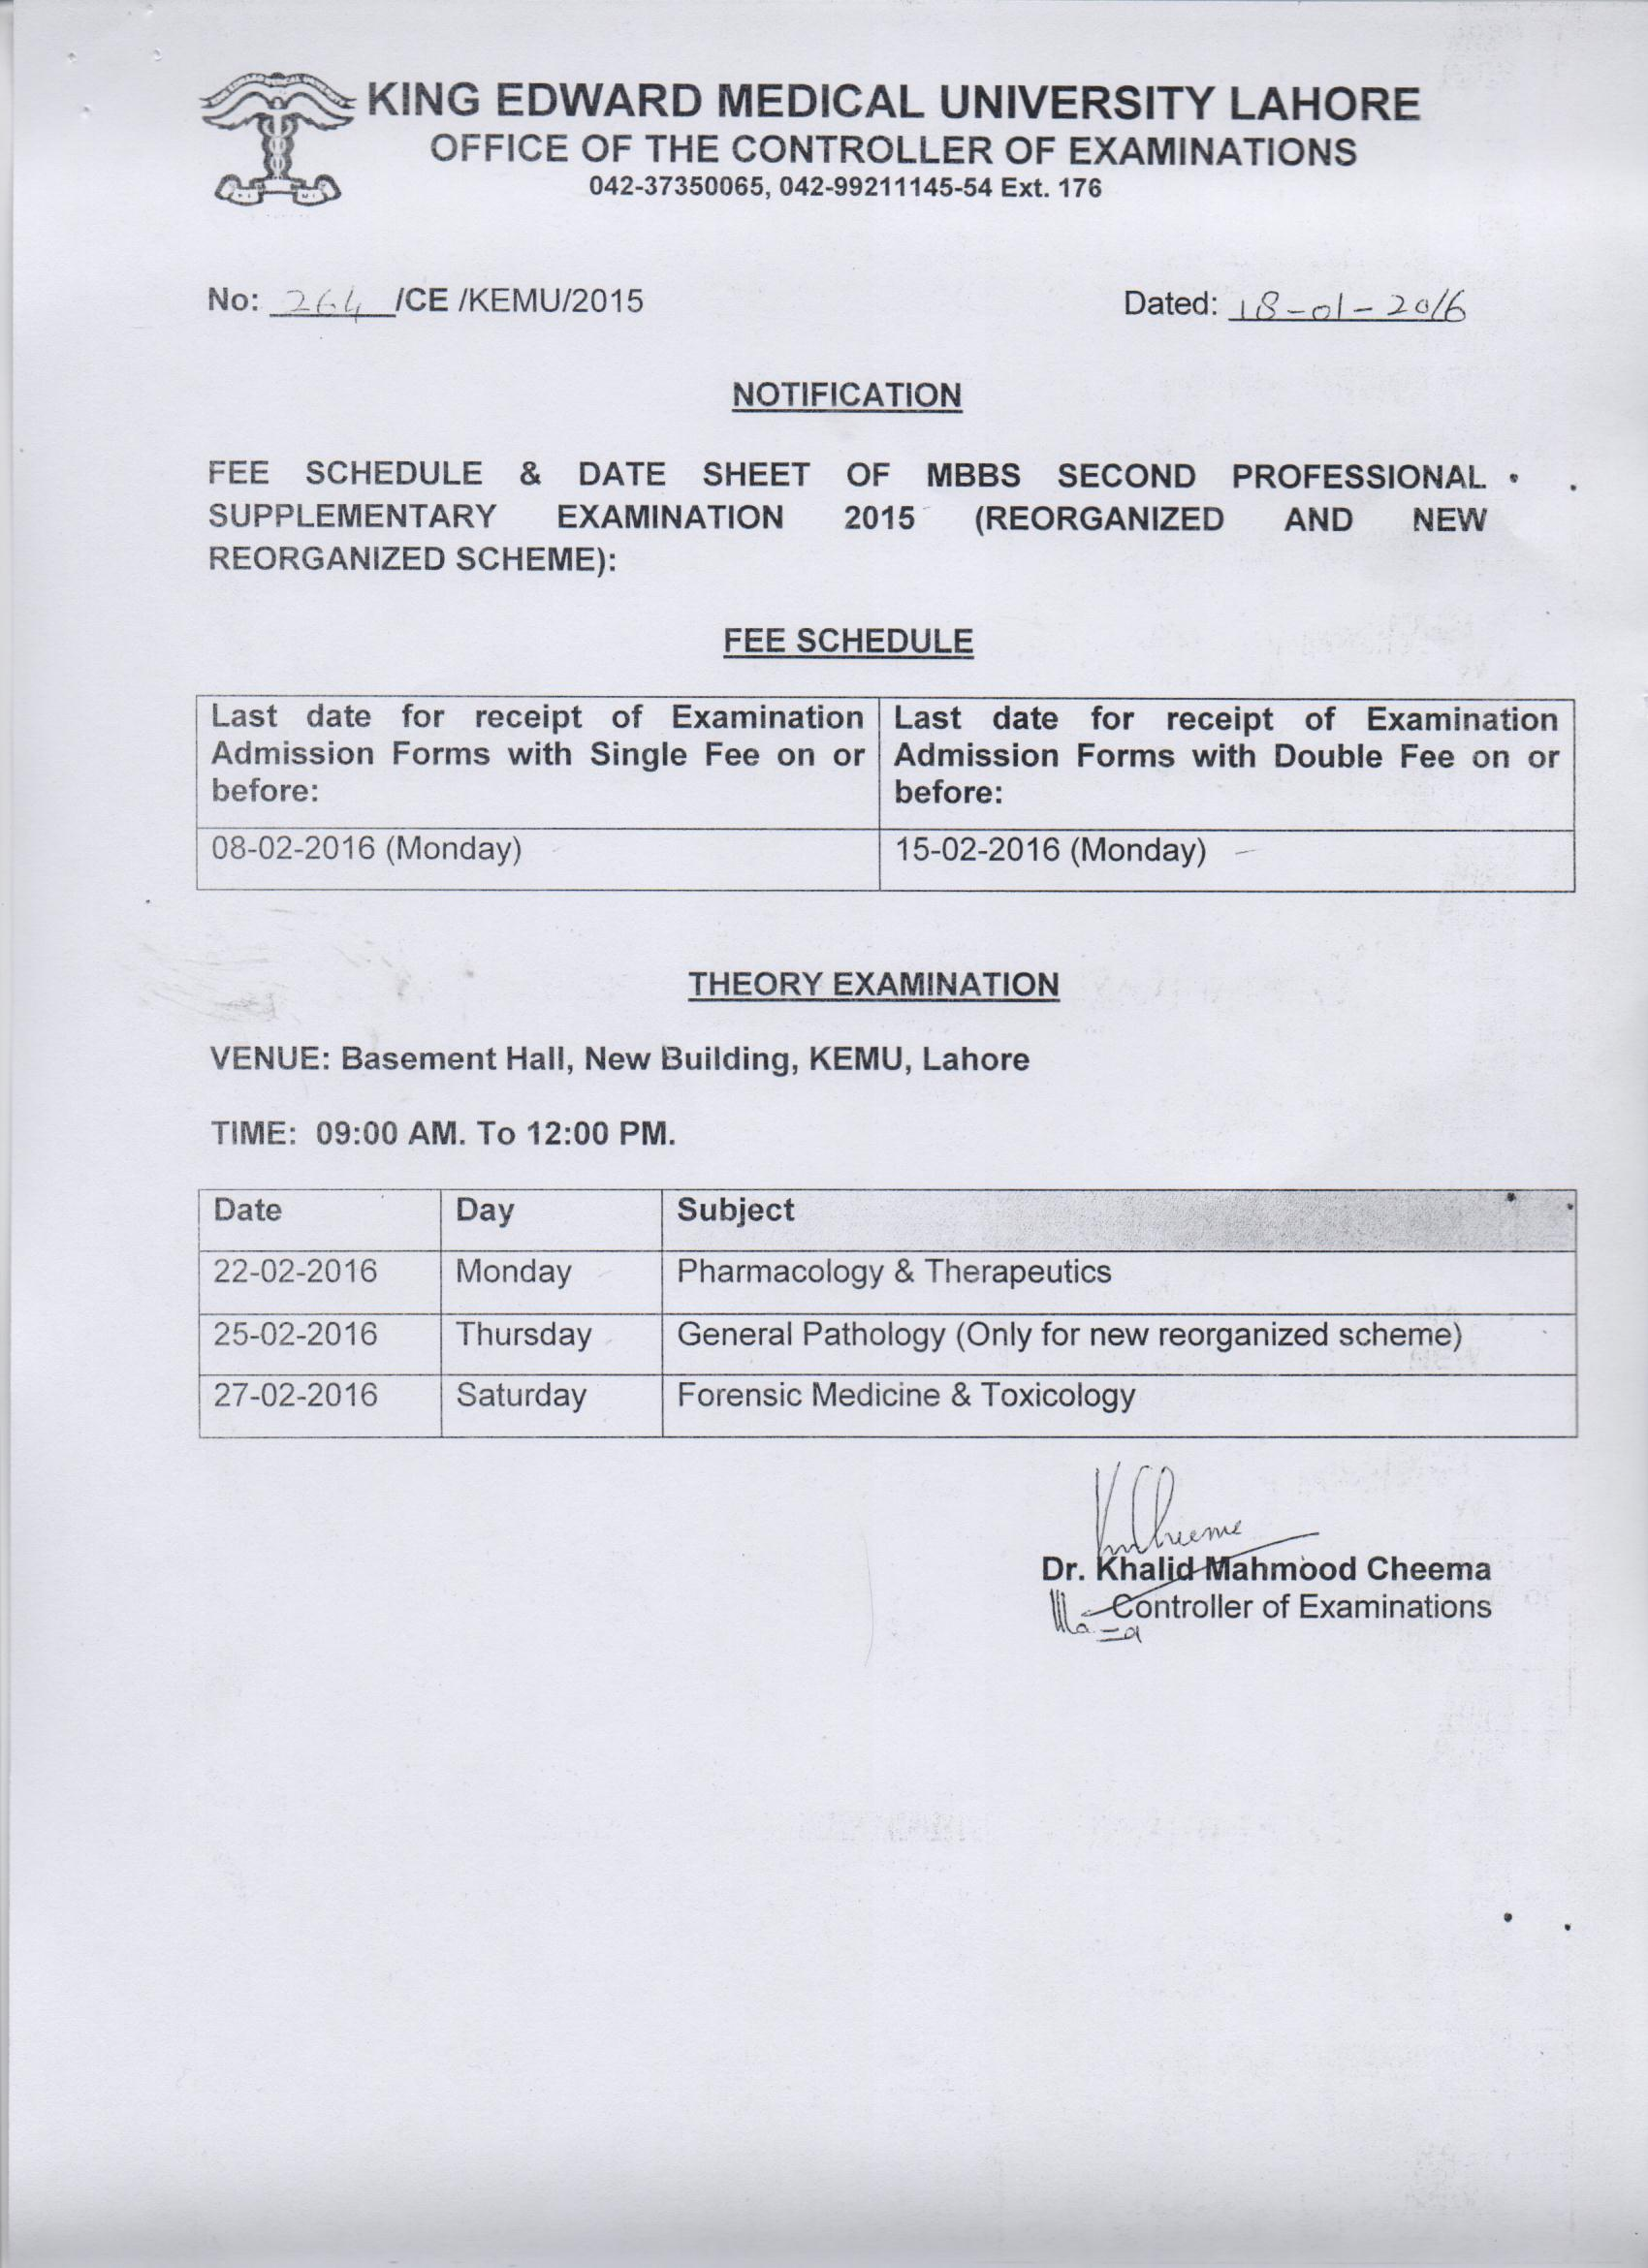 Fee schedule and Date Sheet of MBBS 2nd Professional supplementary Examination 2015